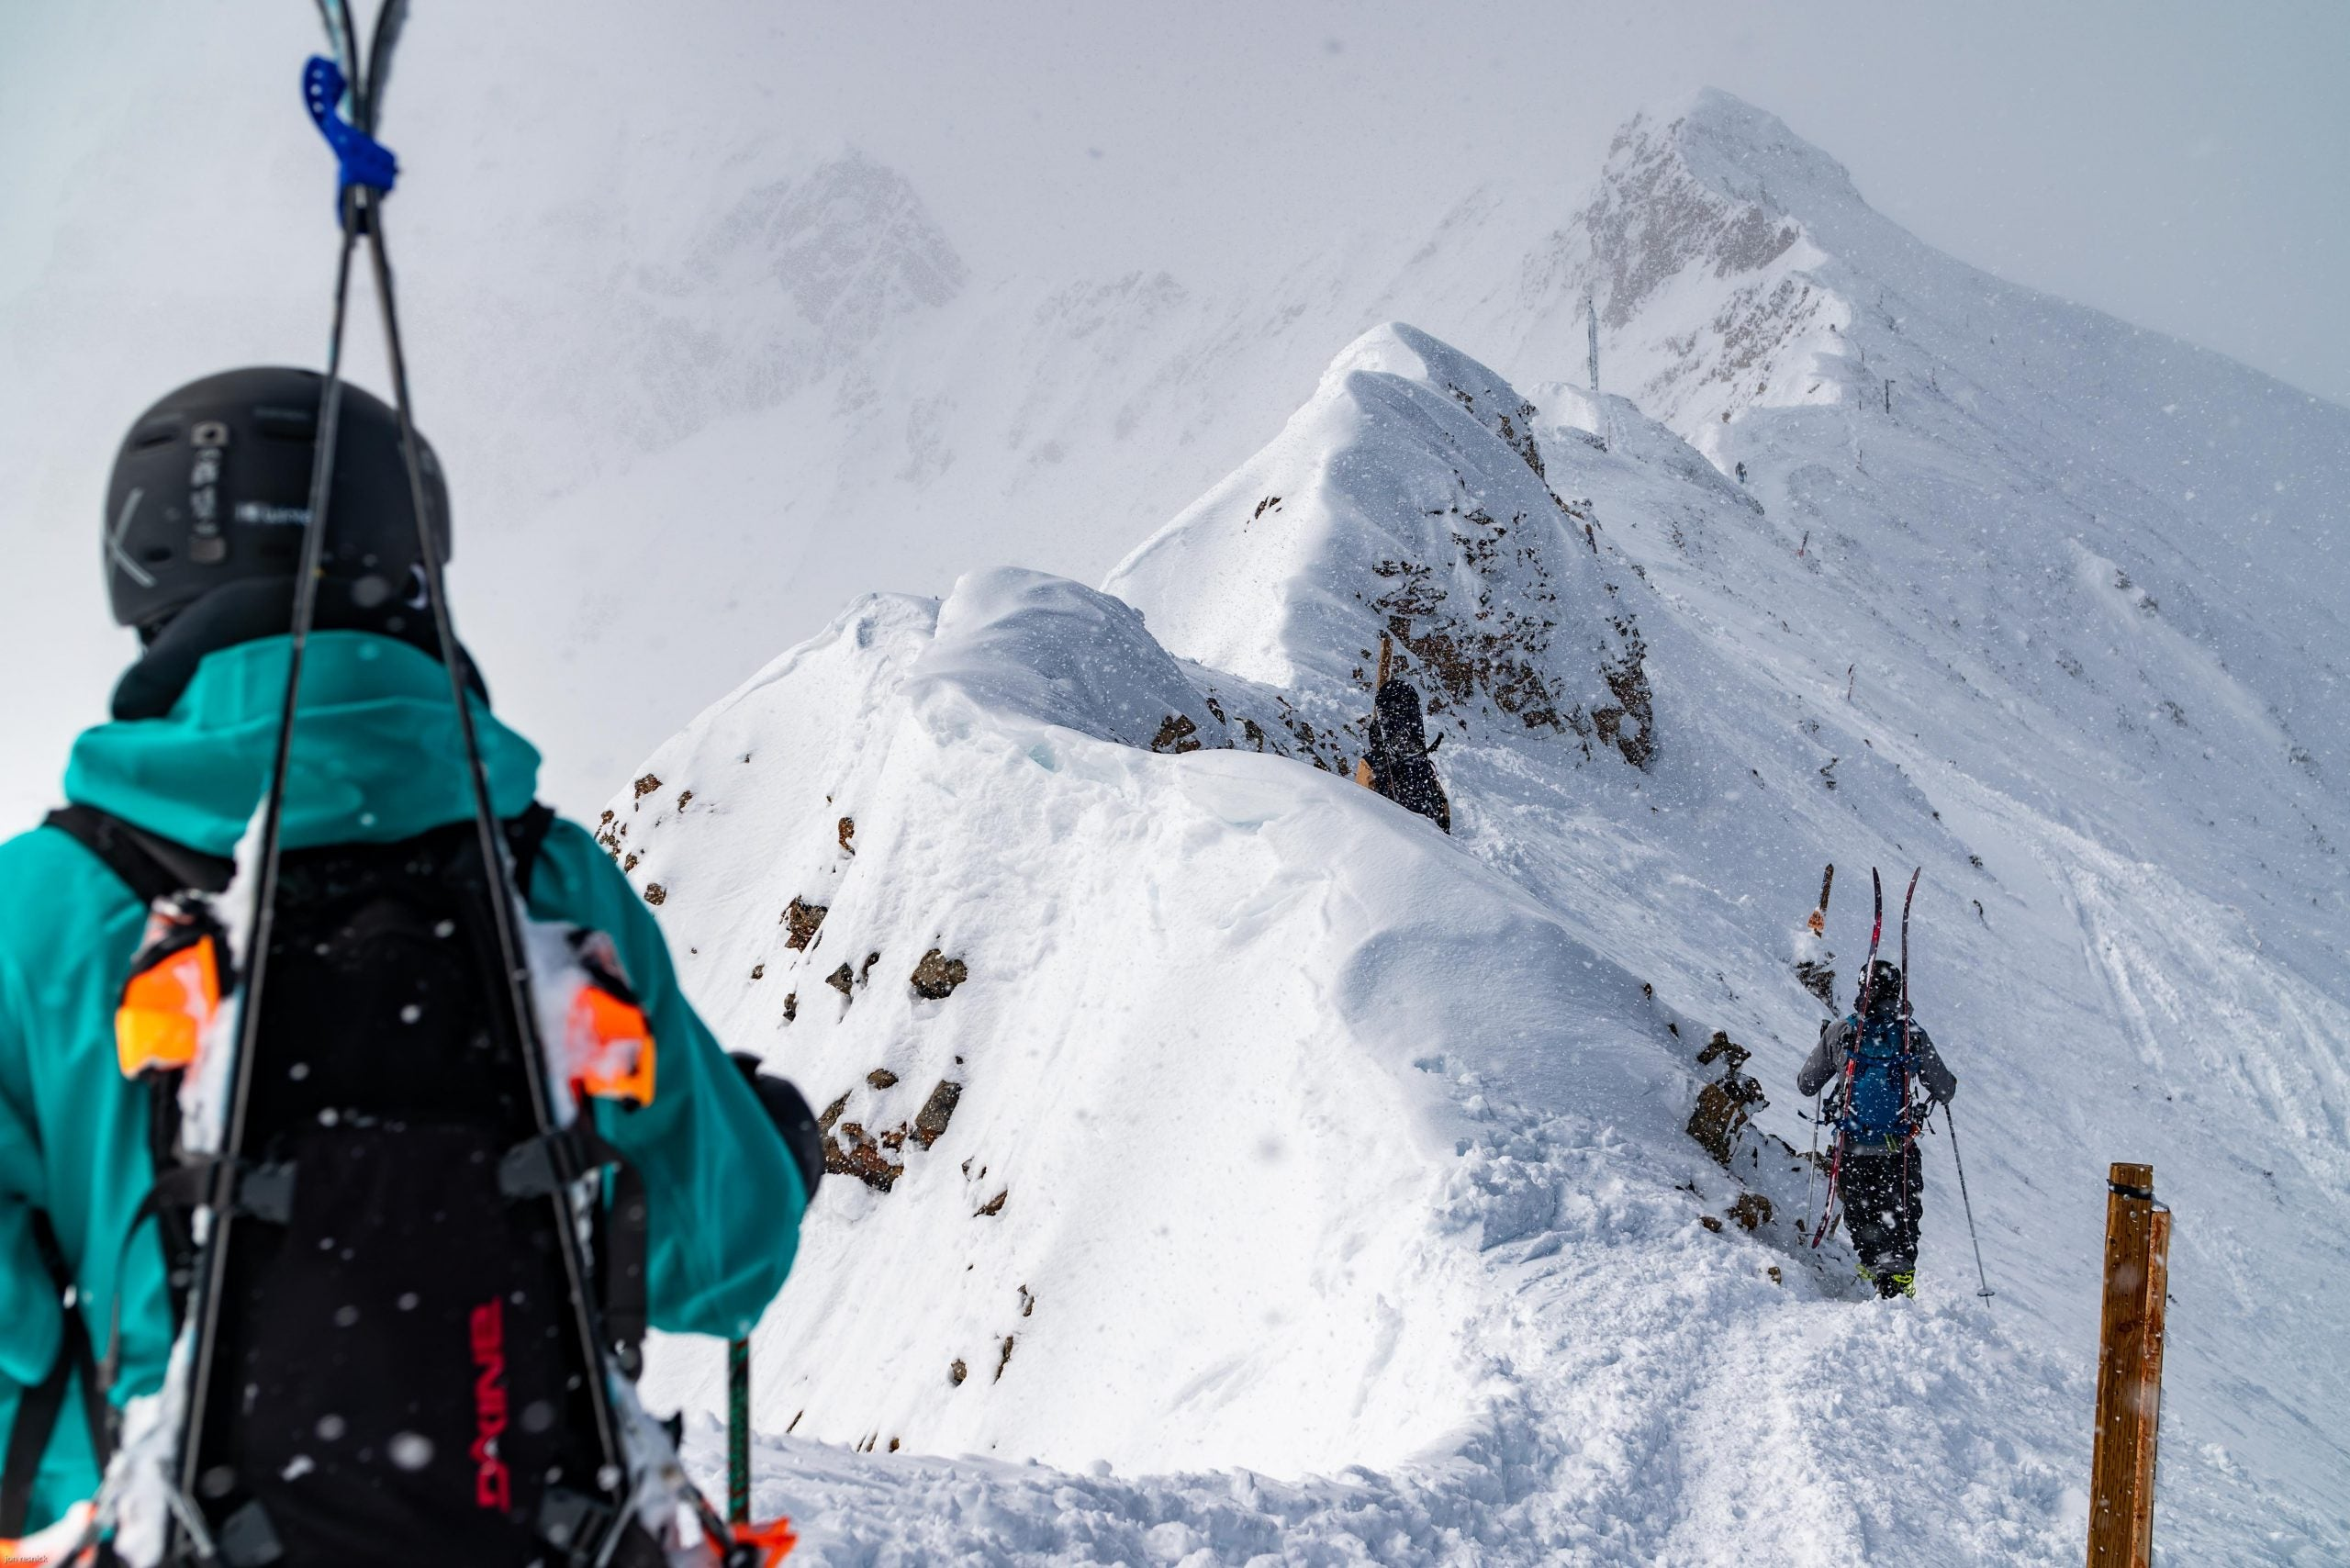 The Big Couloir Isn't the Only Bucket List Run at Big Sky